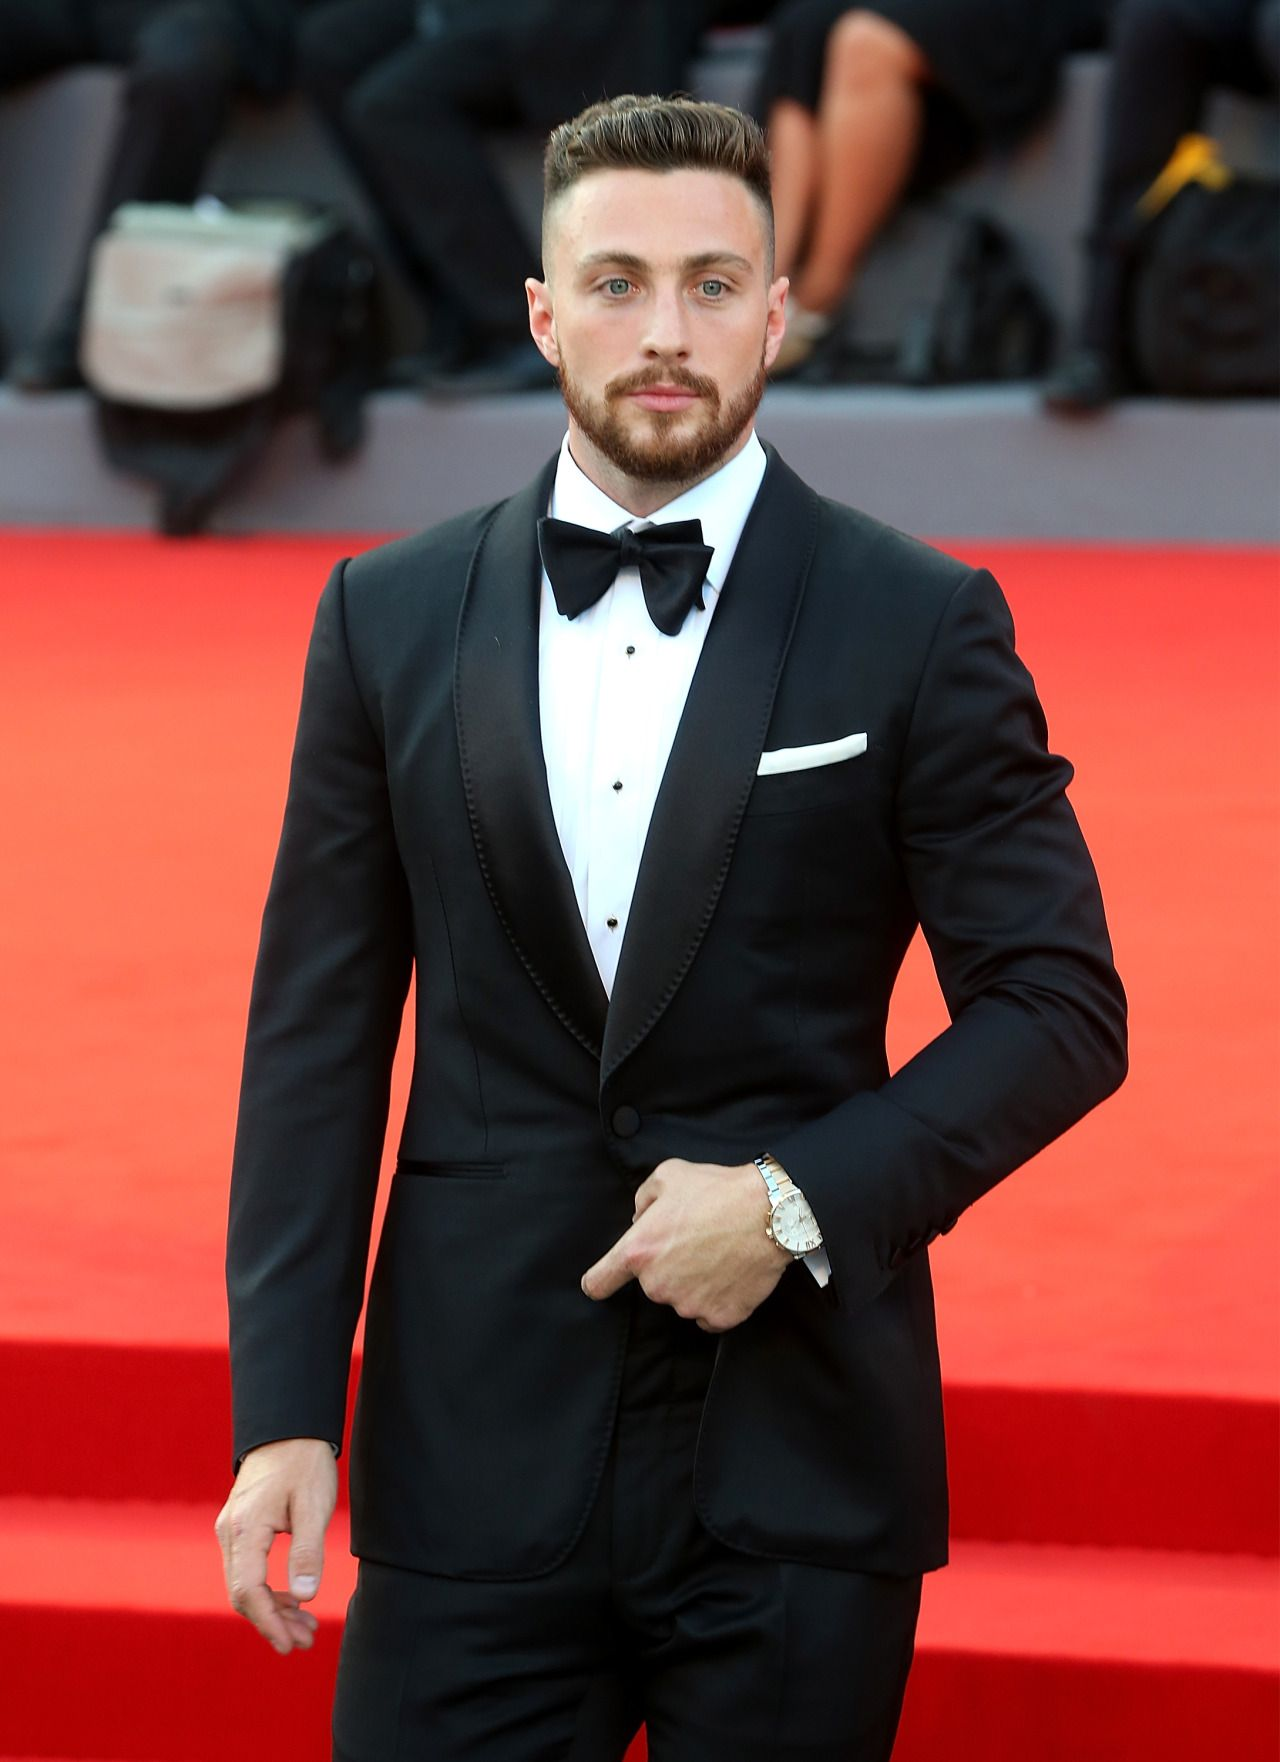 Aaron TaylorJohnson attends the premiere of 'Nocturnal